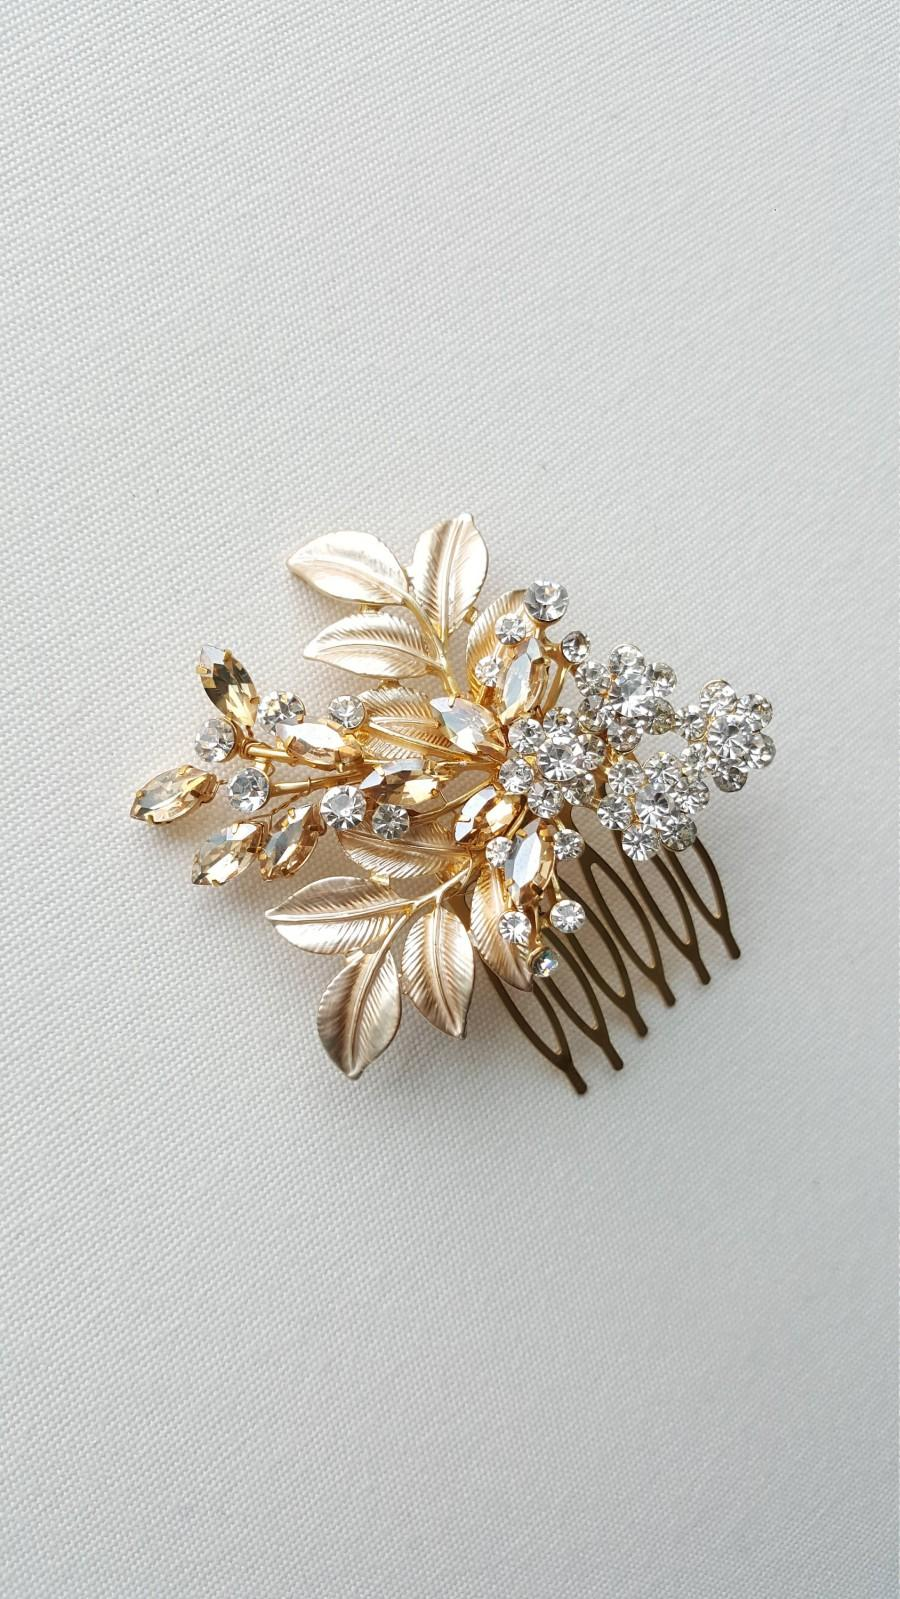 Mariage - Gold Bridal Hair Comb, Wedding Headpiece, Gold Bridal Comb, Gold Wedding Hair Comb